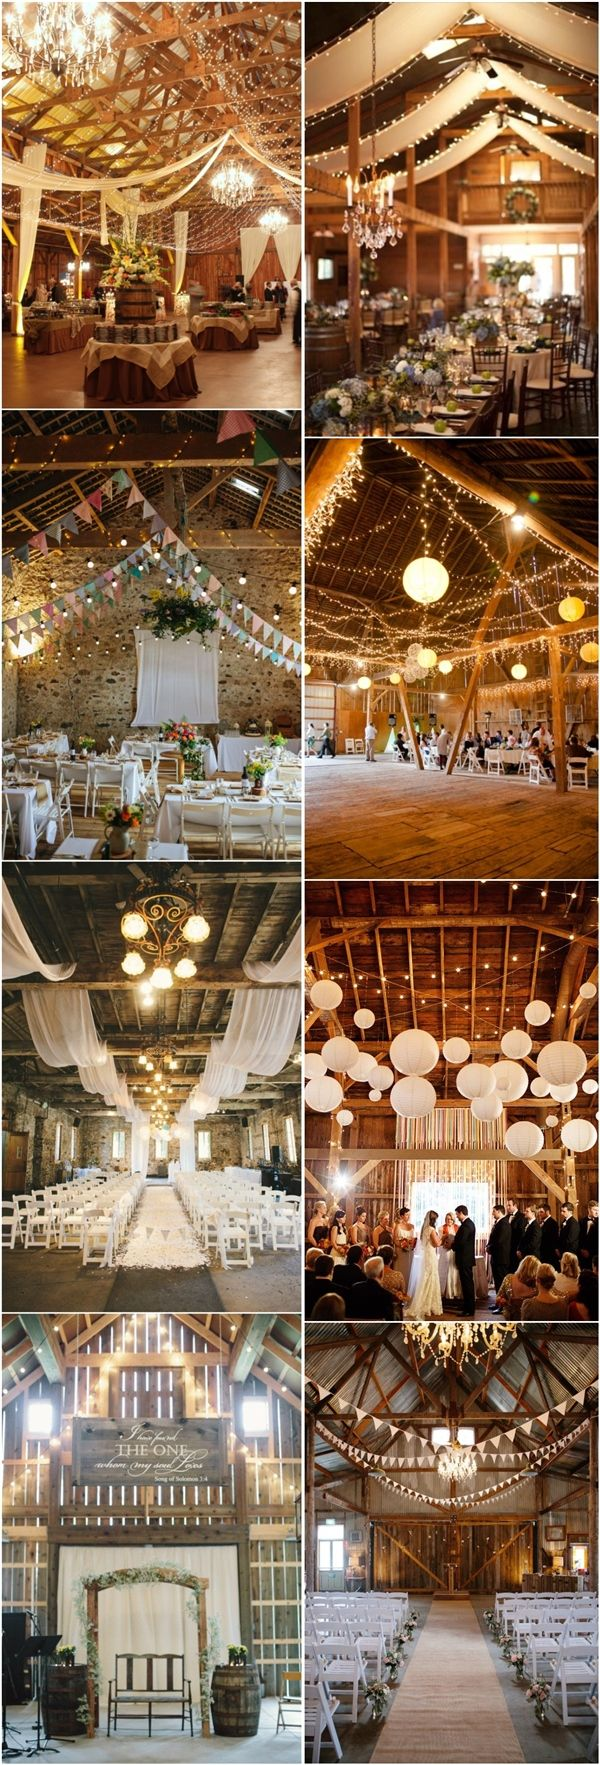 Wedding decorations to take abroad  rustic barn wedding ideas country barn wedding decor ideas  Deer